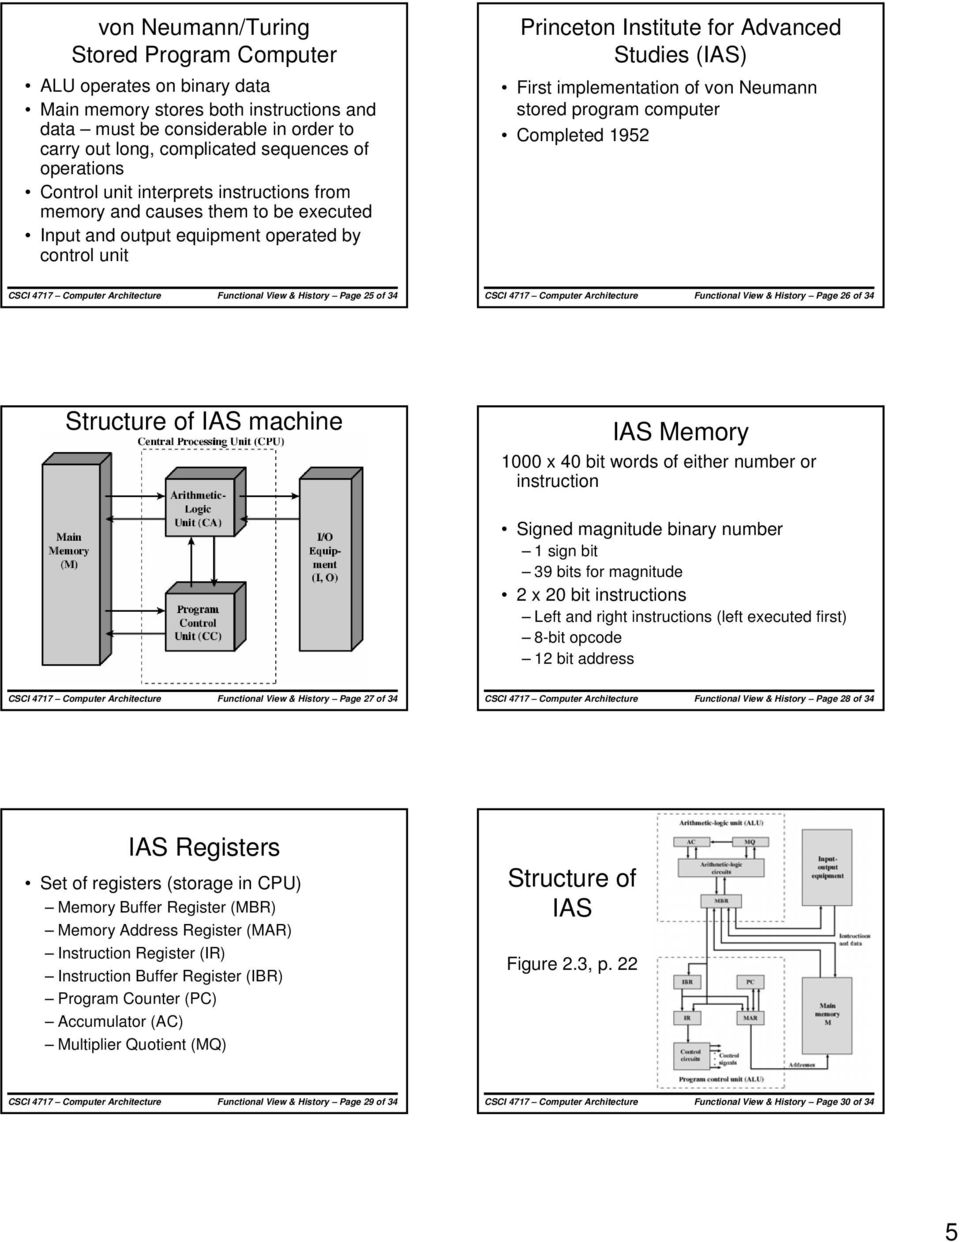 implementation of von Neumann stored program computer Completed 1952 Functional View & History Page 25 of 34 Functional View & History Page 26 of 34 Structure of IAS machine IAS Memory 1000 x 40 bit